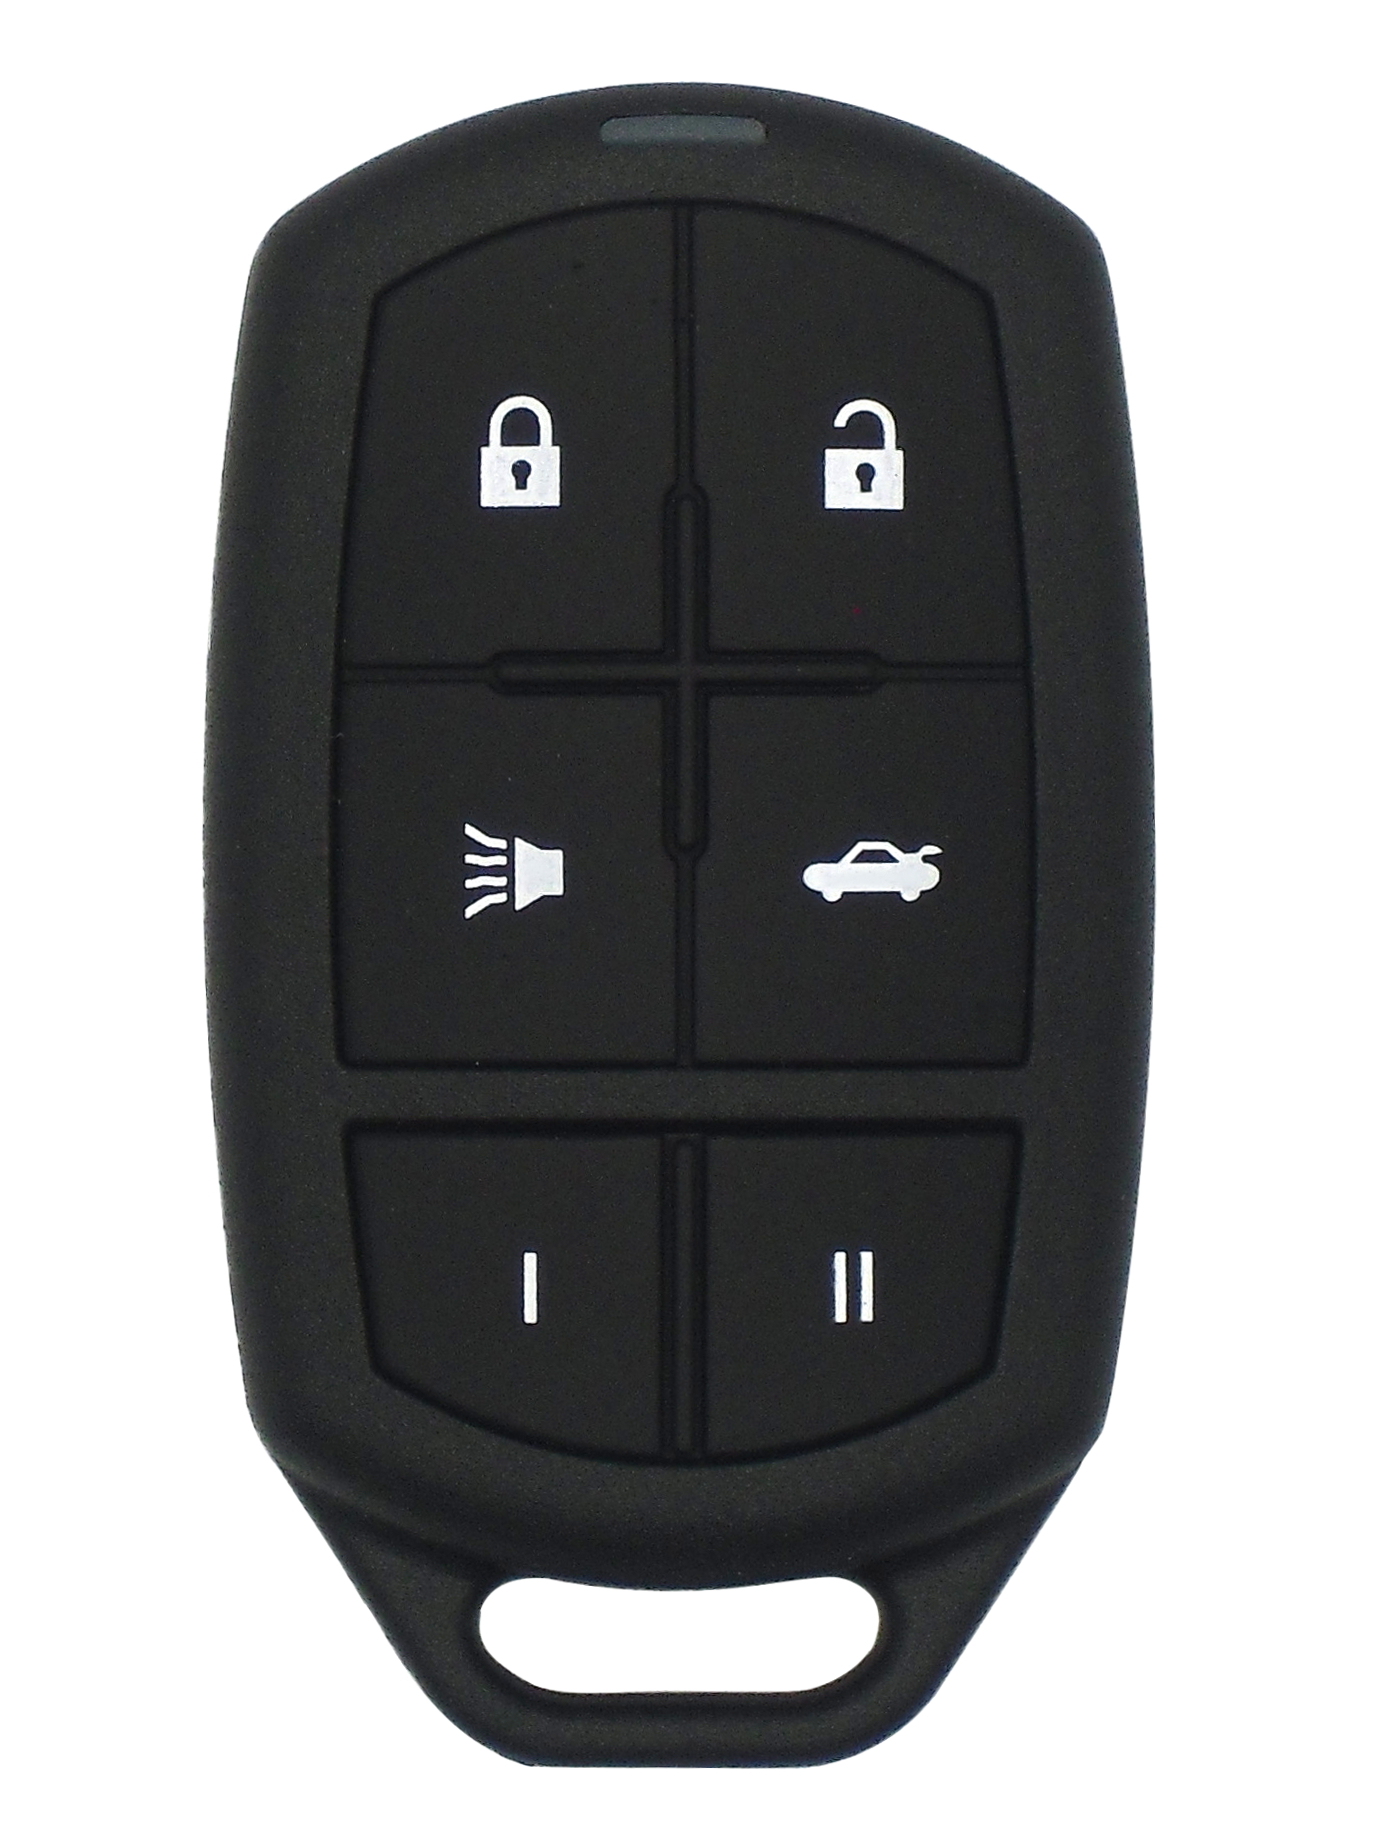 ikeyless brand keyless entry remote for 2002 nissan xterra